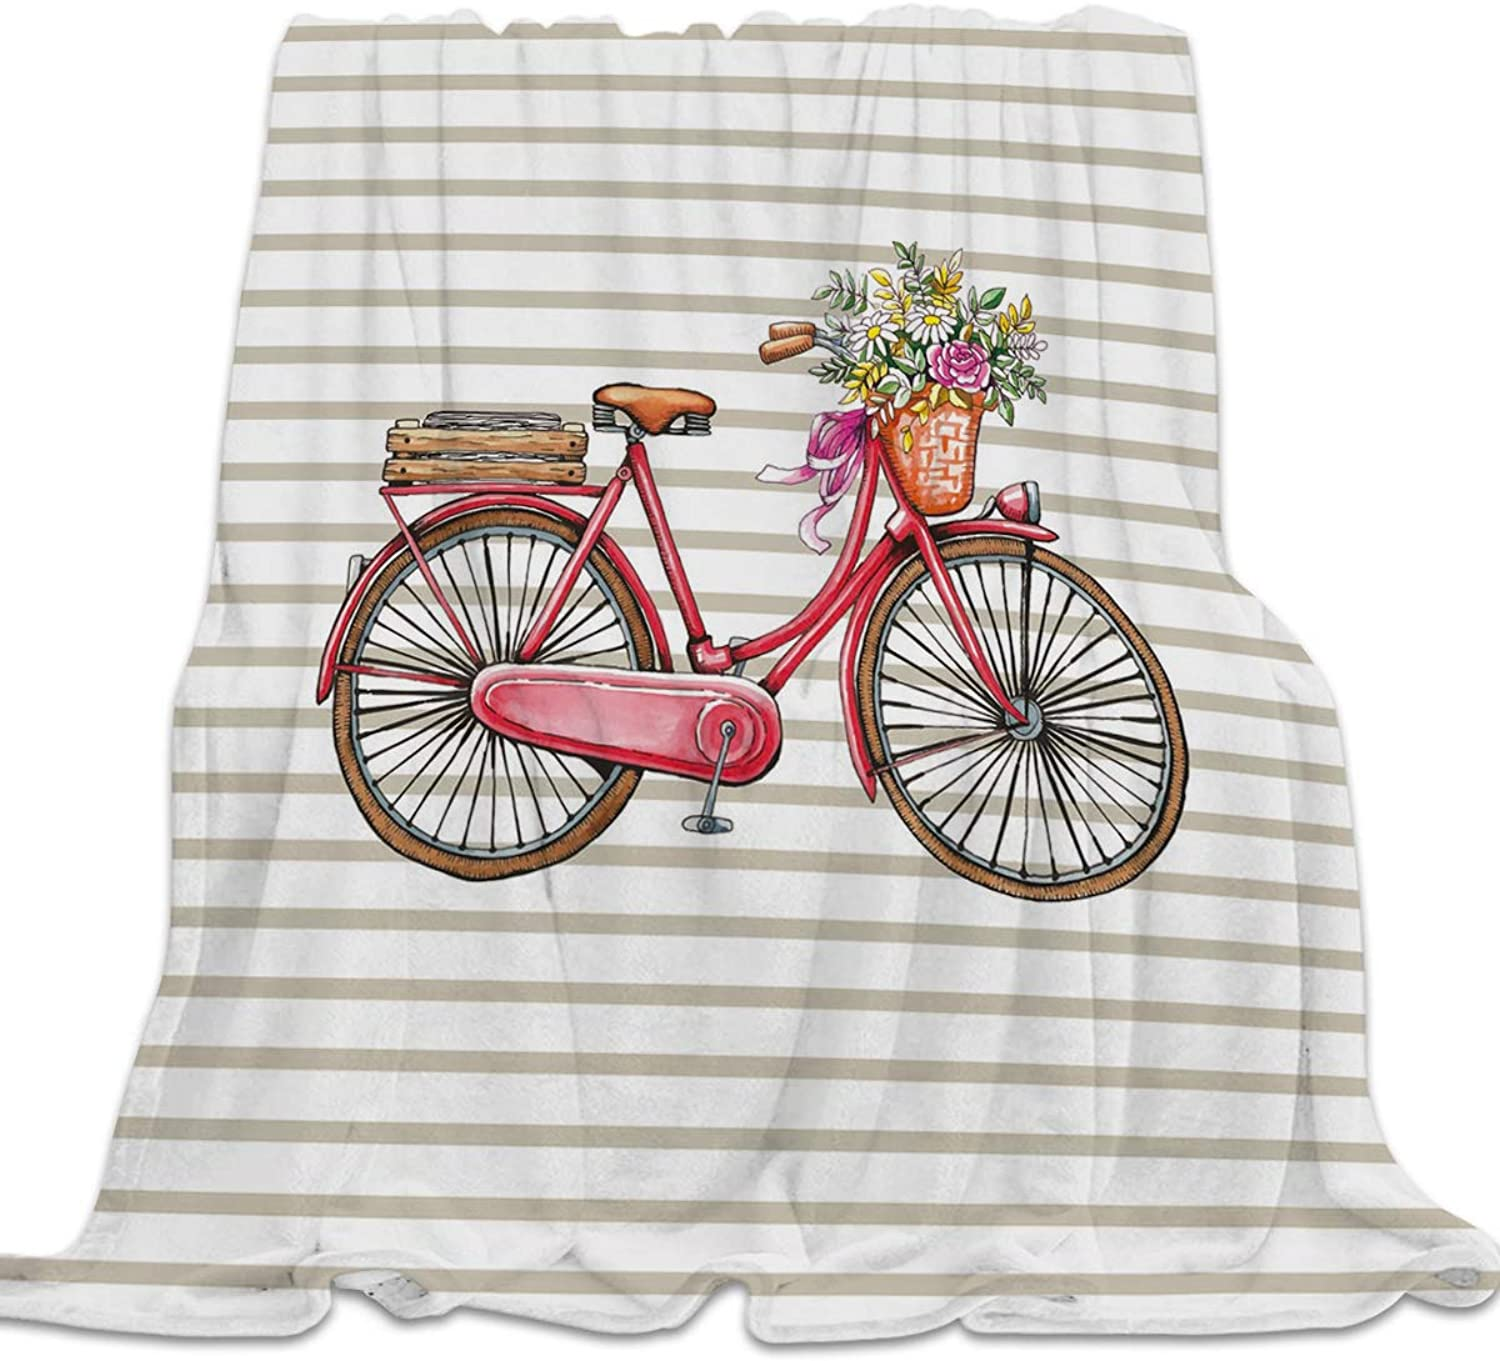 Clouday Flannel Fleece Bed Blanket Warm ThrowBlankets for Girls Boys,Cozy Lightweight Blankets for Bedroom Living Room Sofa Couch,Hand Painting Bicycle with Flower Stripe Prints,49x59inch